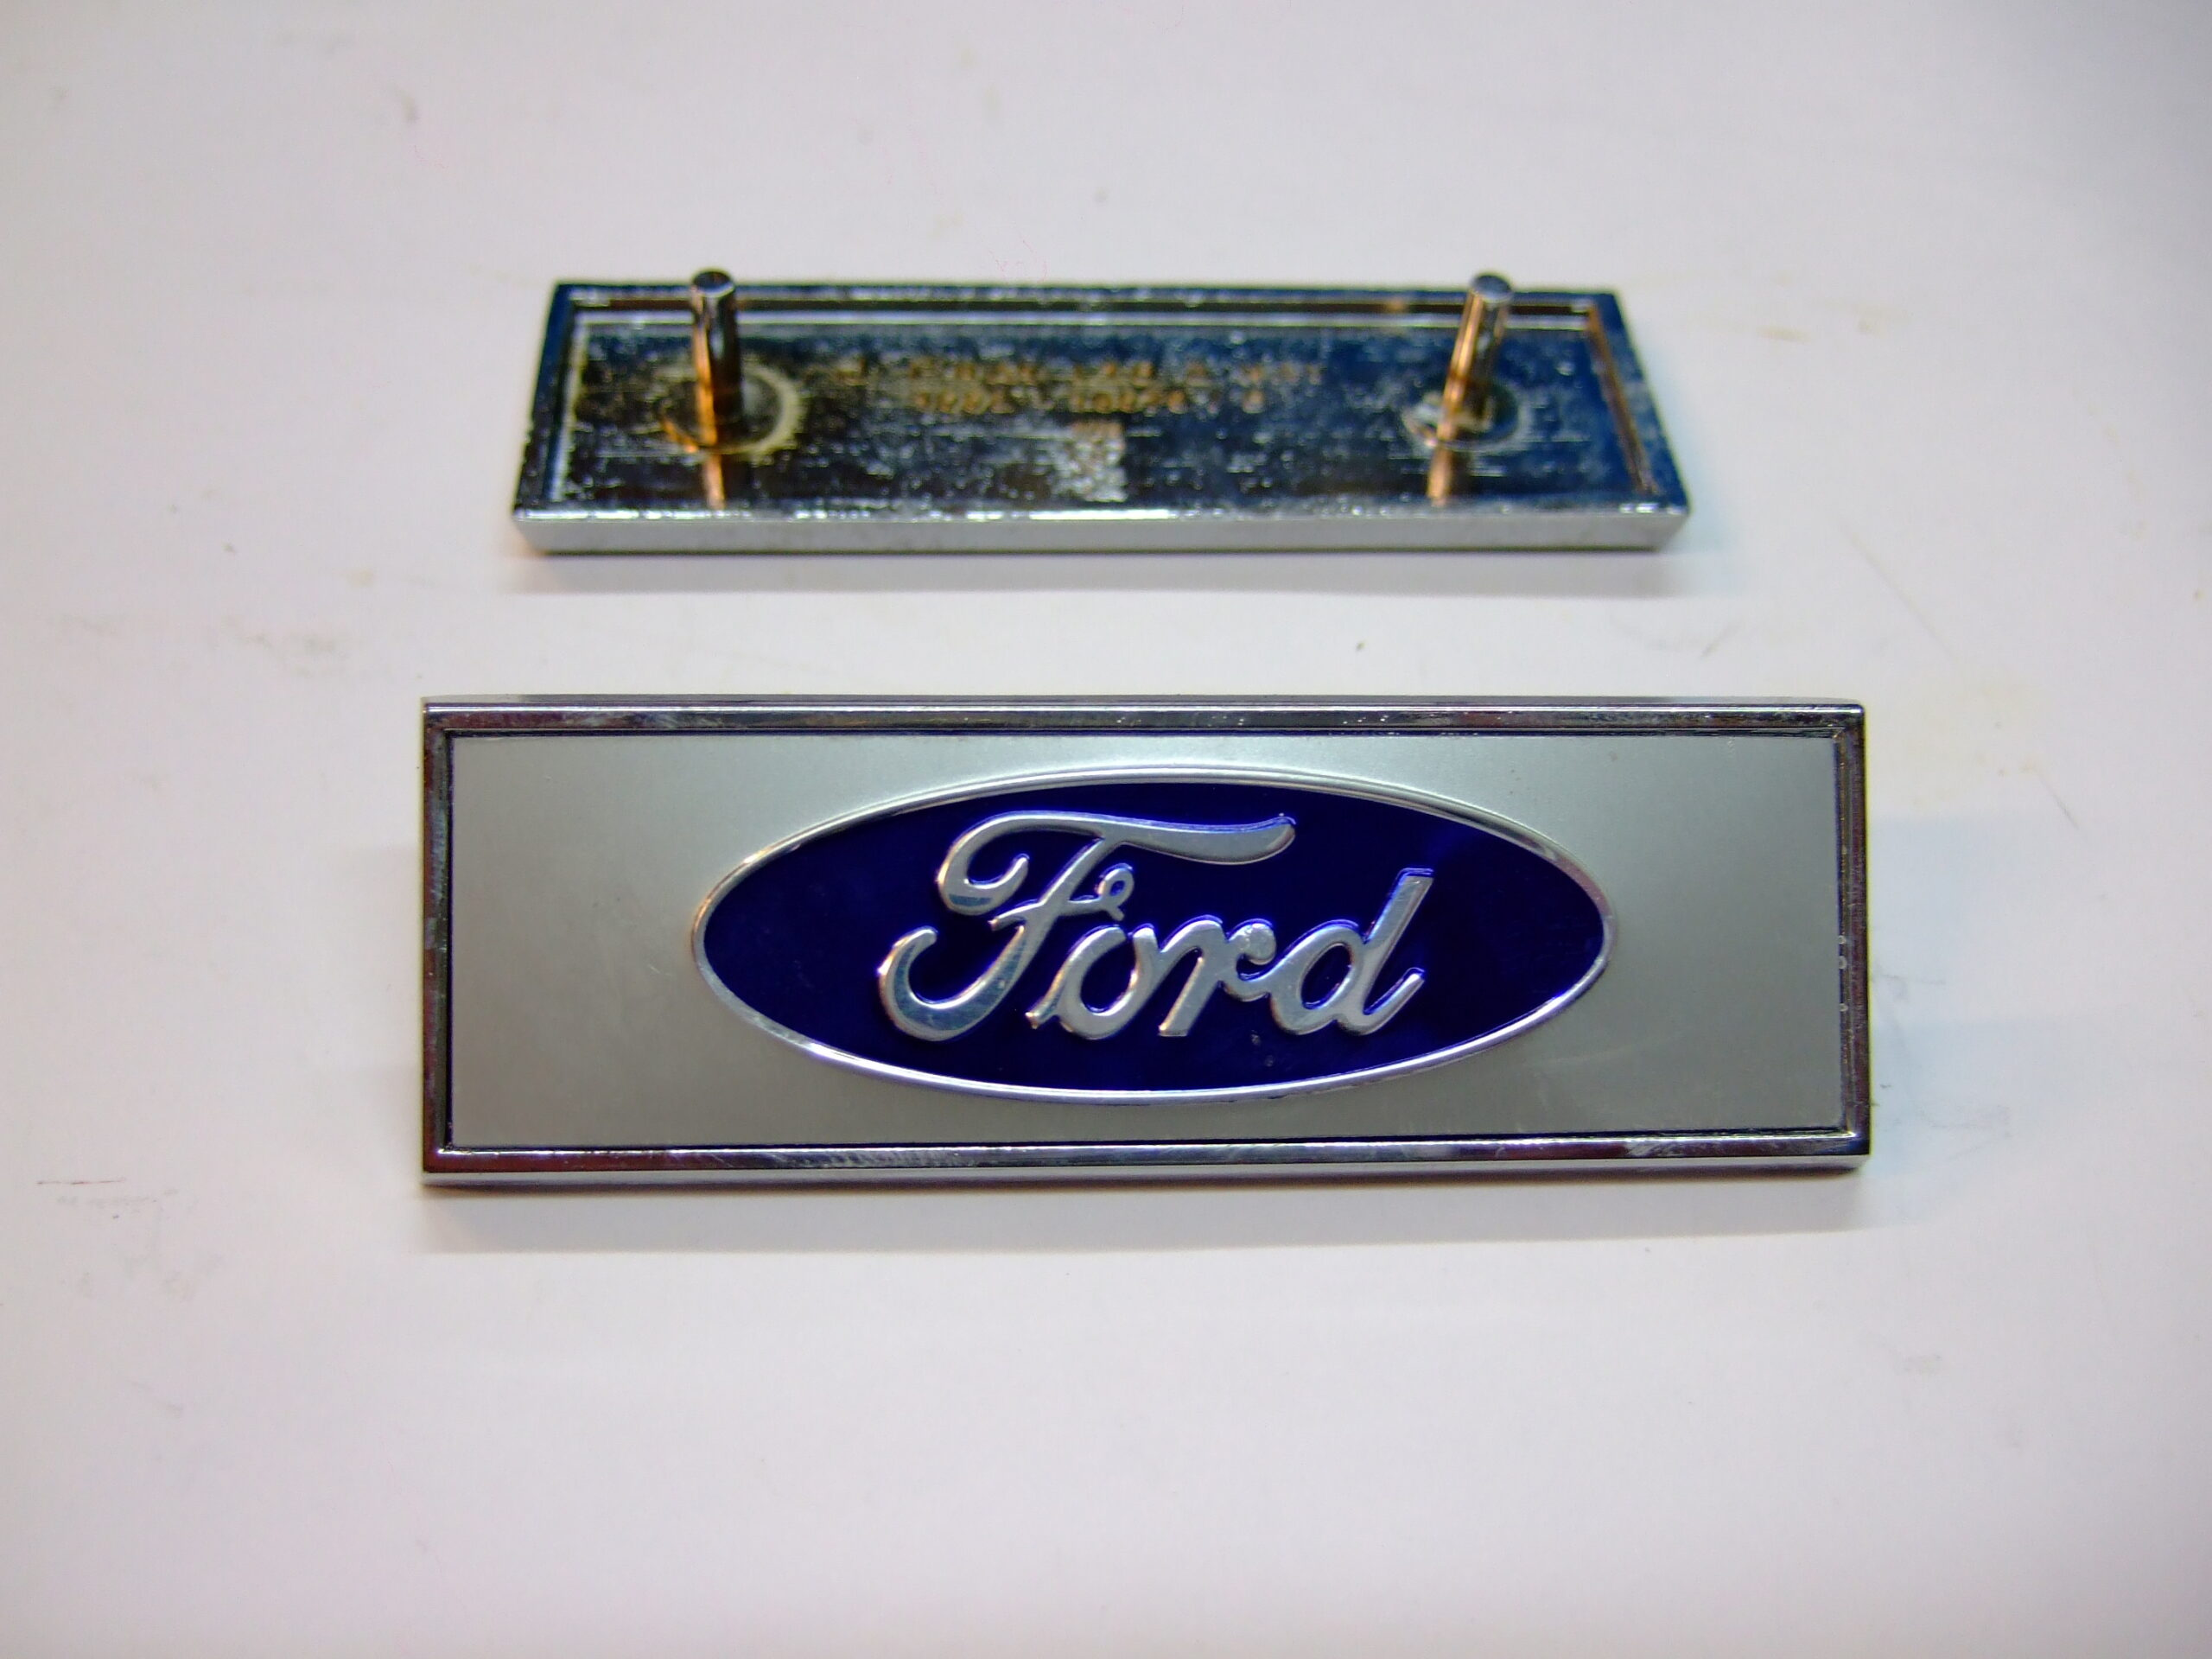 Ford front wing badge